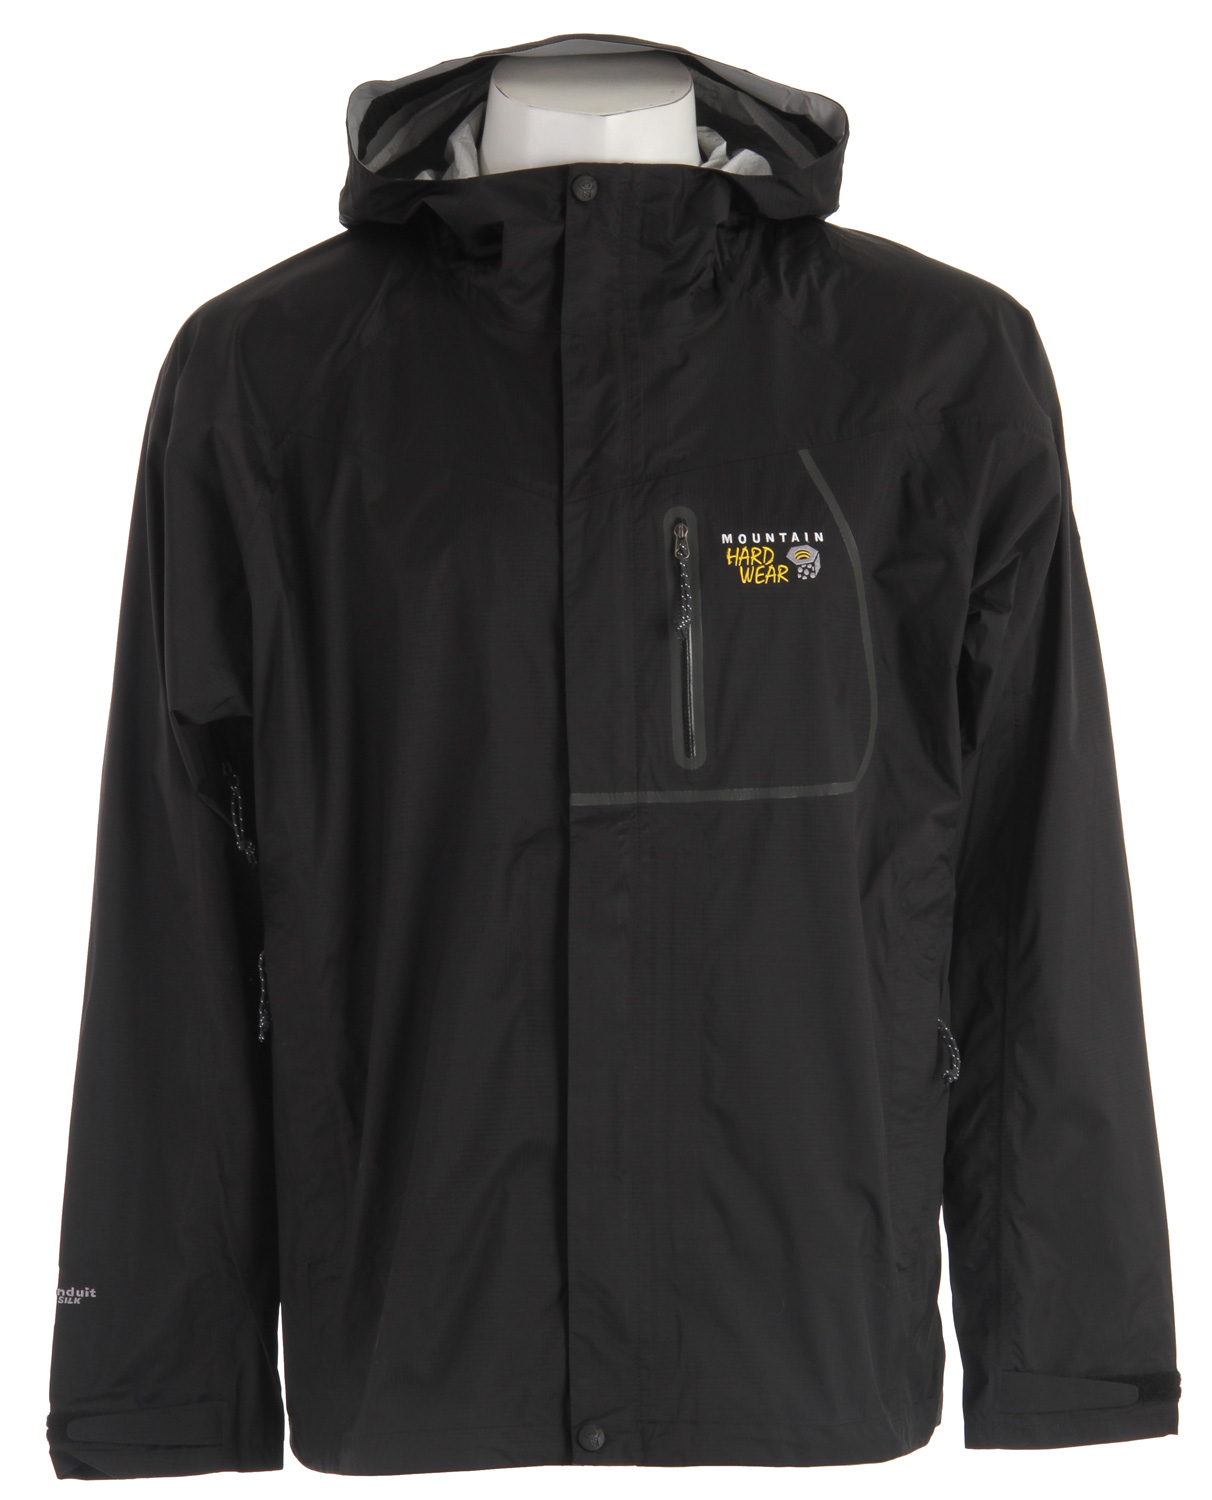 "Key Features of the Mountain Hardwear Epic Rain Jacket: Avg. weight: 12oz; 348g Center back length: 26.5"" Fabric: body: Ark Ripstop 2.5L (100% nylon) DryQ Elite: 100% waterproof, most breathable, air-permeable, no-wait comfort Attached hood with extra-beefy brim for added protection against the elements Pit zips Micro-Chamois - lined chin guard eliminates zipper chafe Dual hem drawcords for quick fit adjustments Adjustable Velcro cuffs for quick fit adjustments - $64.95"